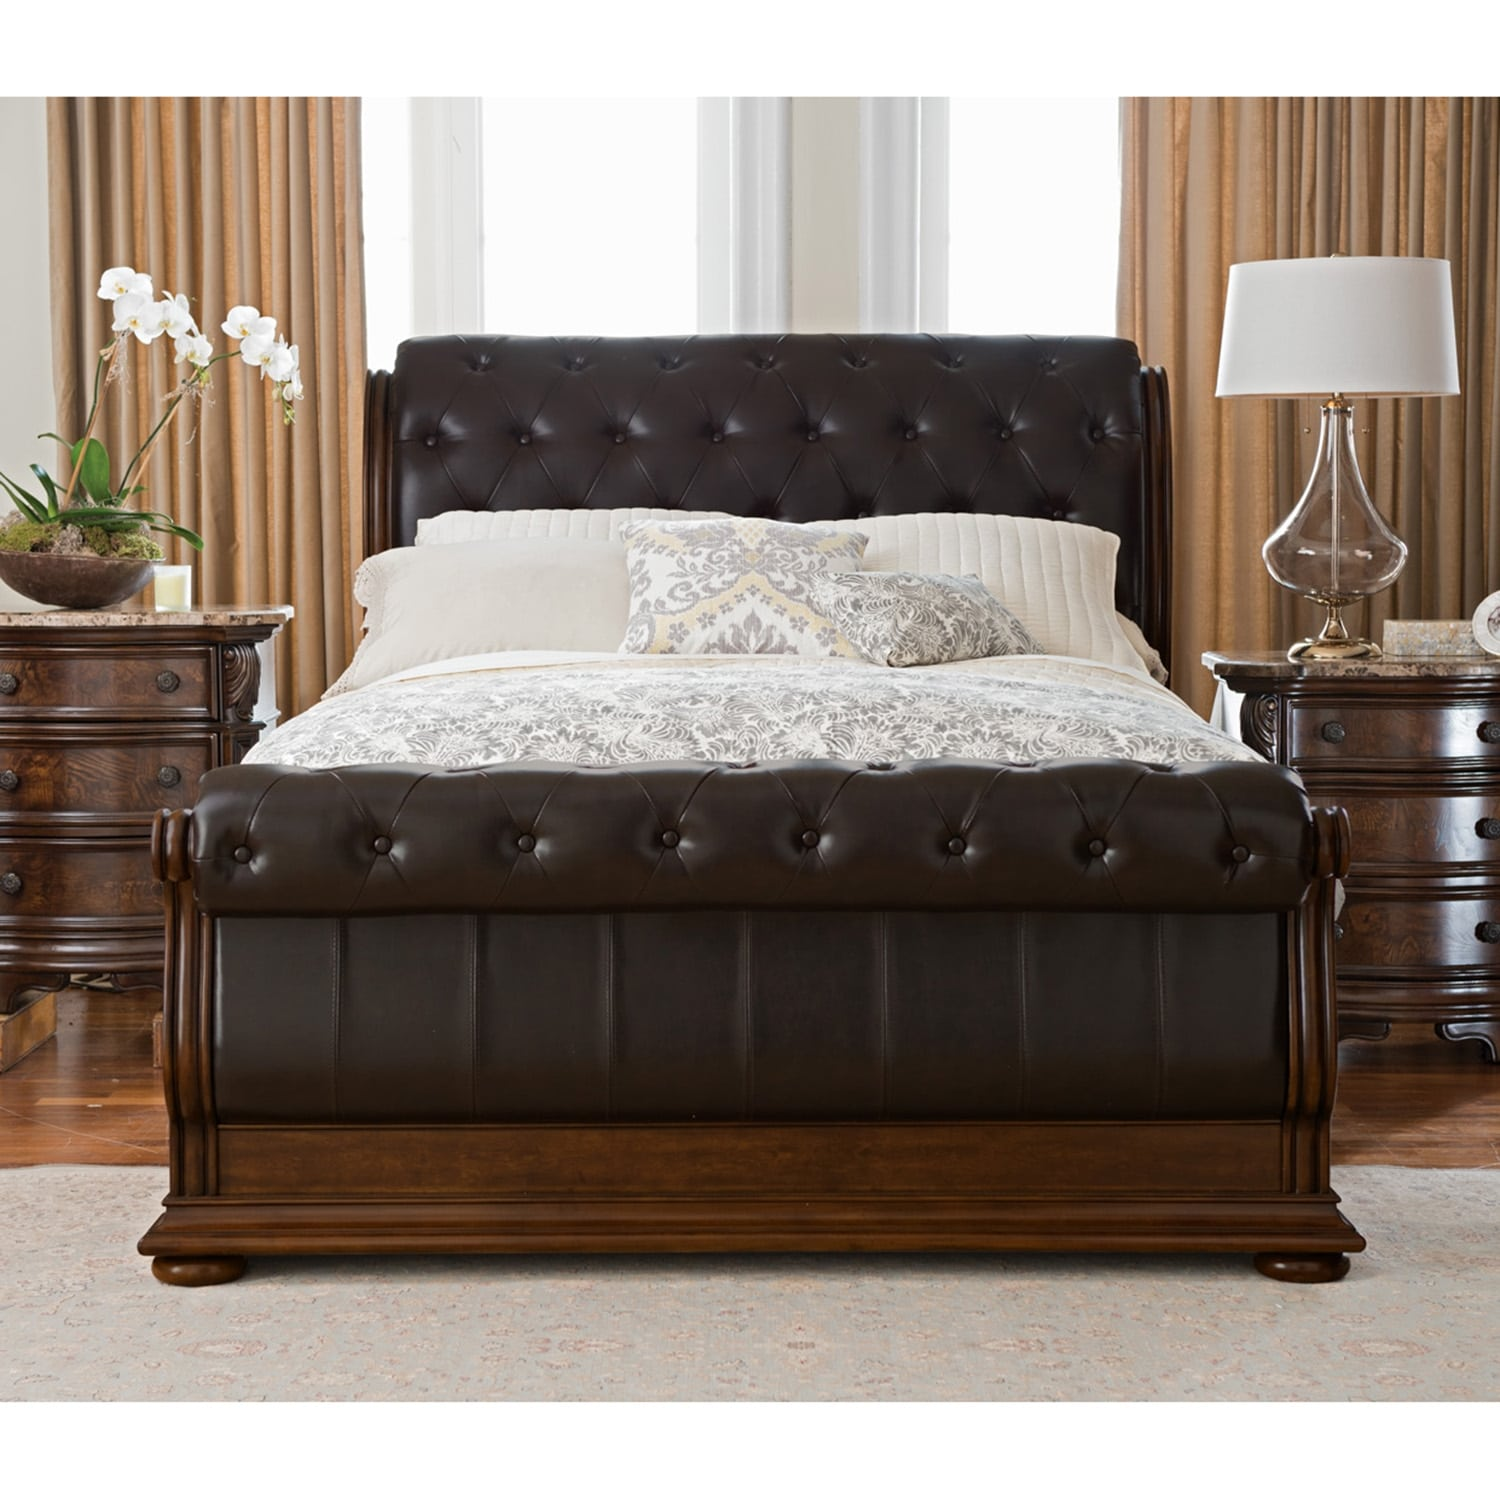 Monticello 6-Piece King Upholstered Sleigh Bedroom Set